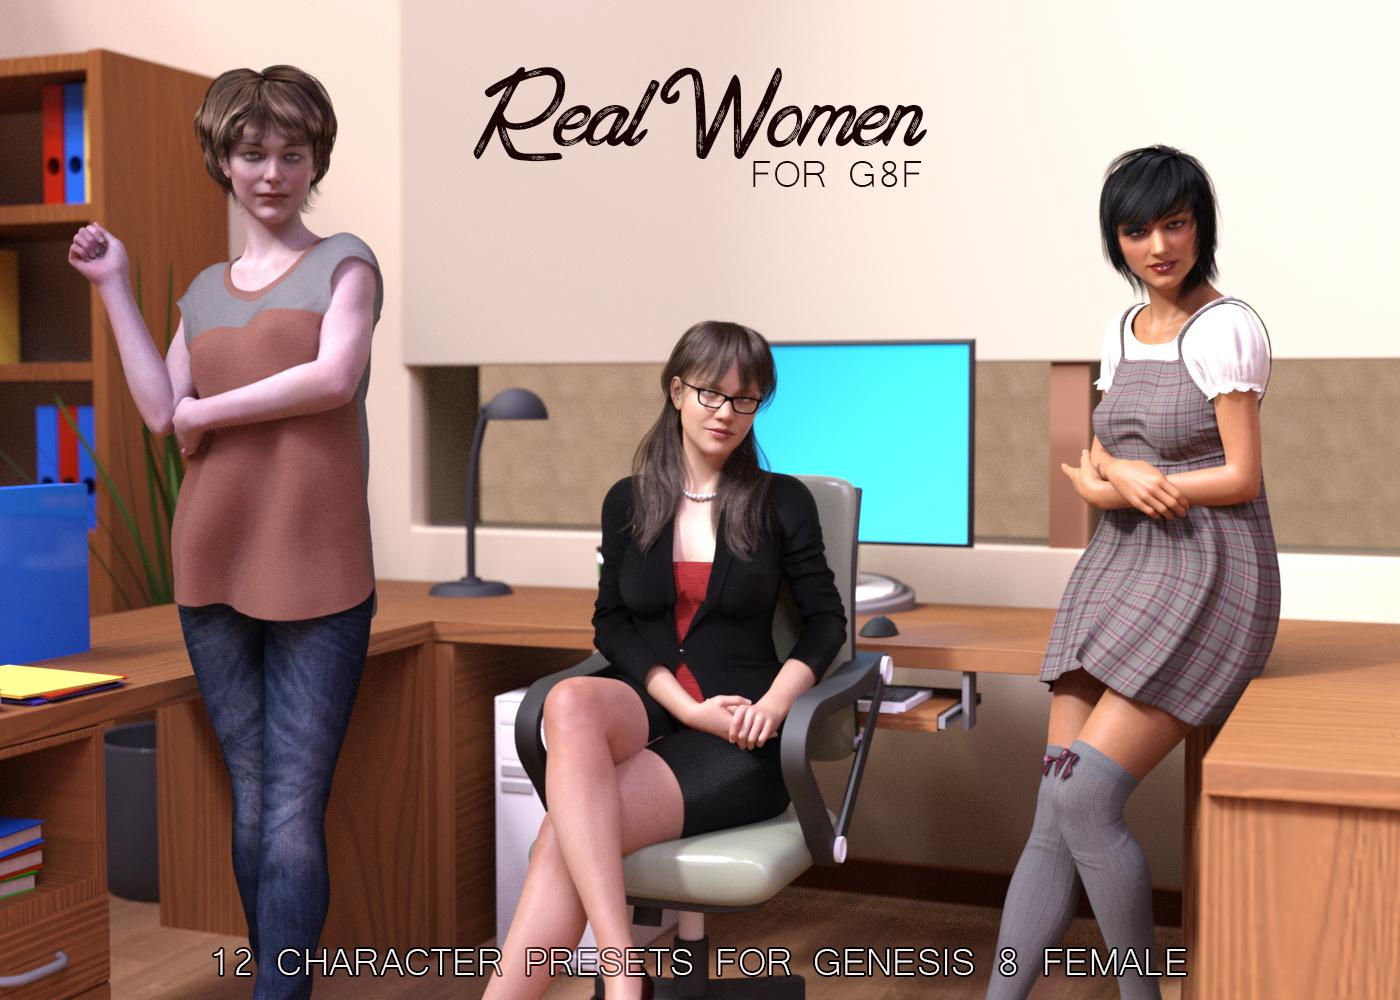 Real Women for G8F